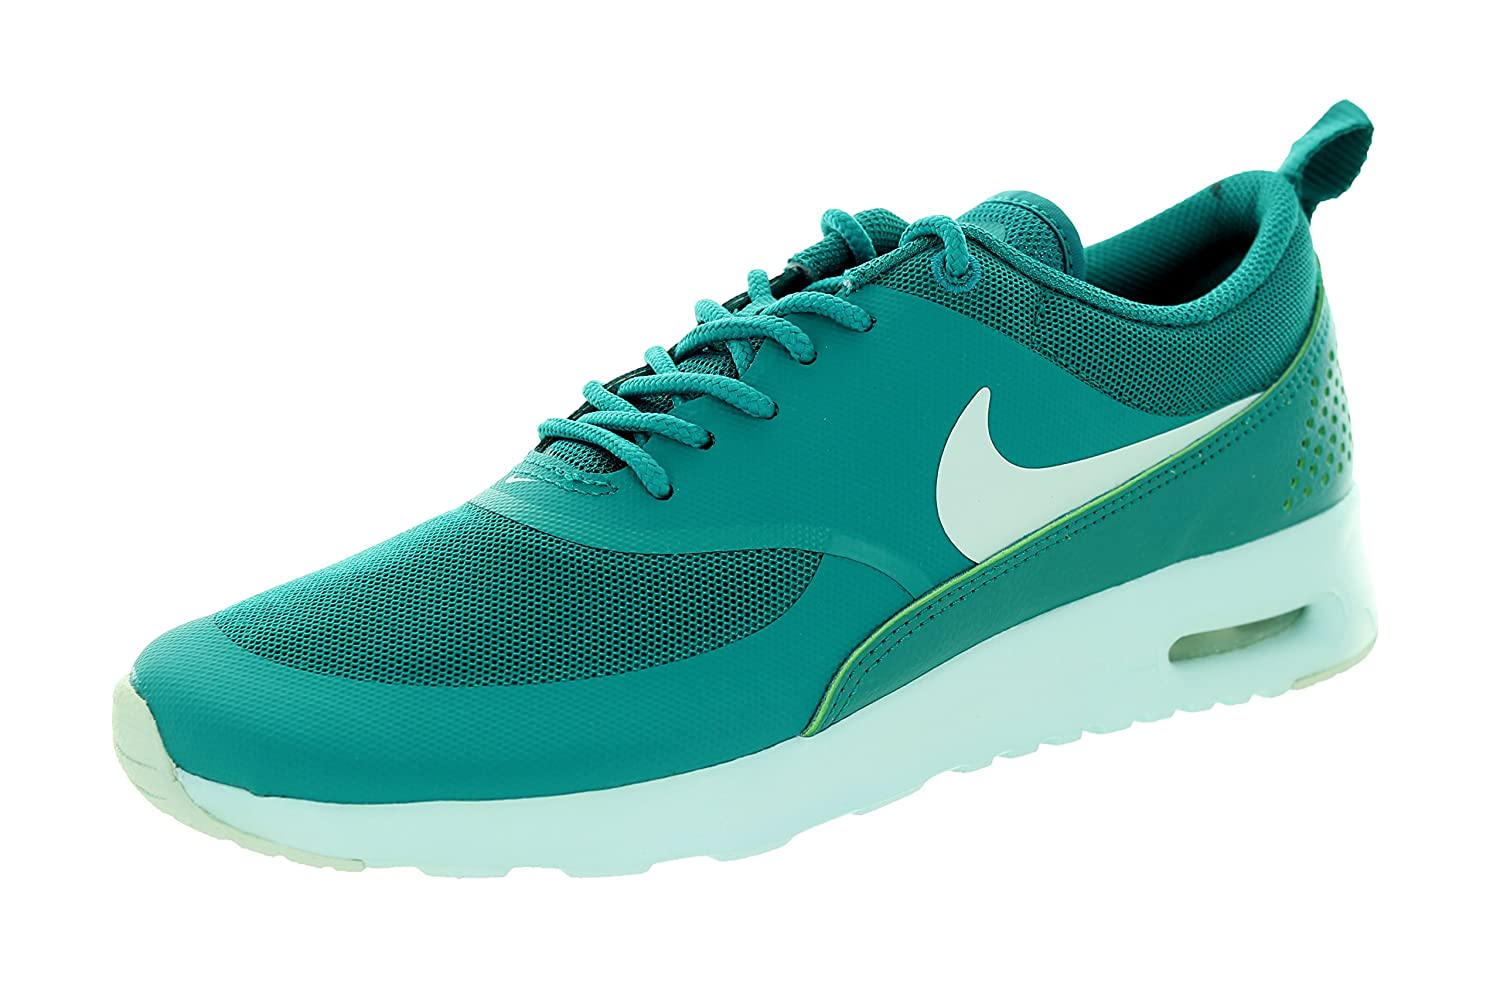 NIKE Women's Air Max Thea Low-Top Sneakers, Black B00PZ874UG 6 B(M) US|Emerald/White